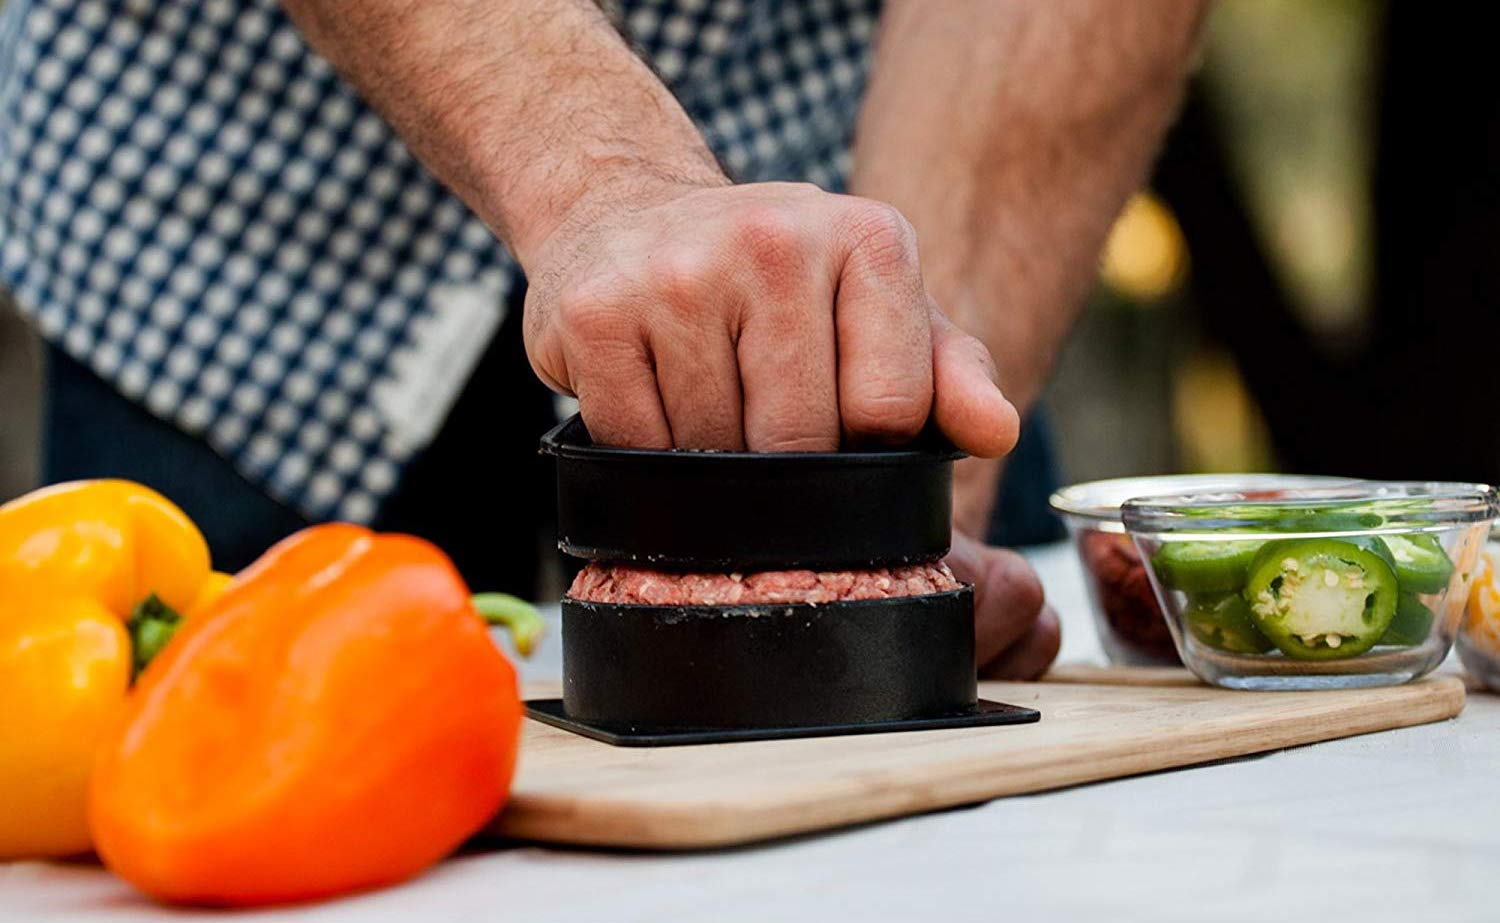 Grillaholics Stuffed Burger Press Hamburger Filler makes round, full burgers ready for the grill